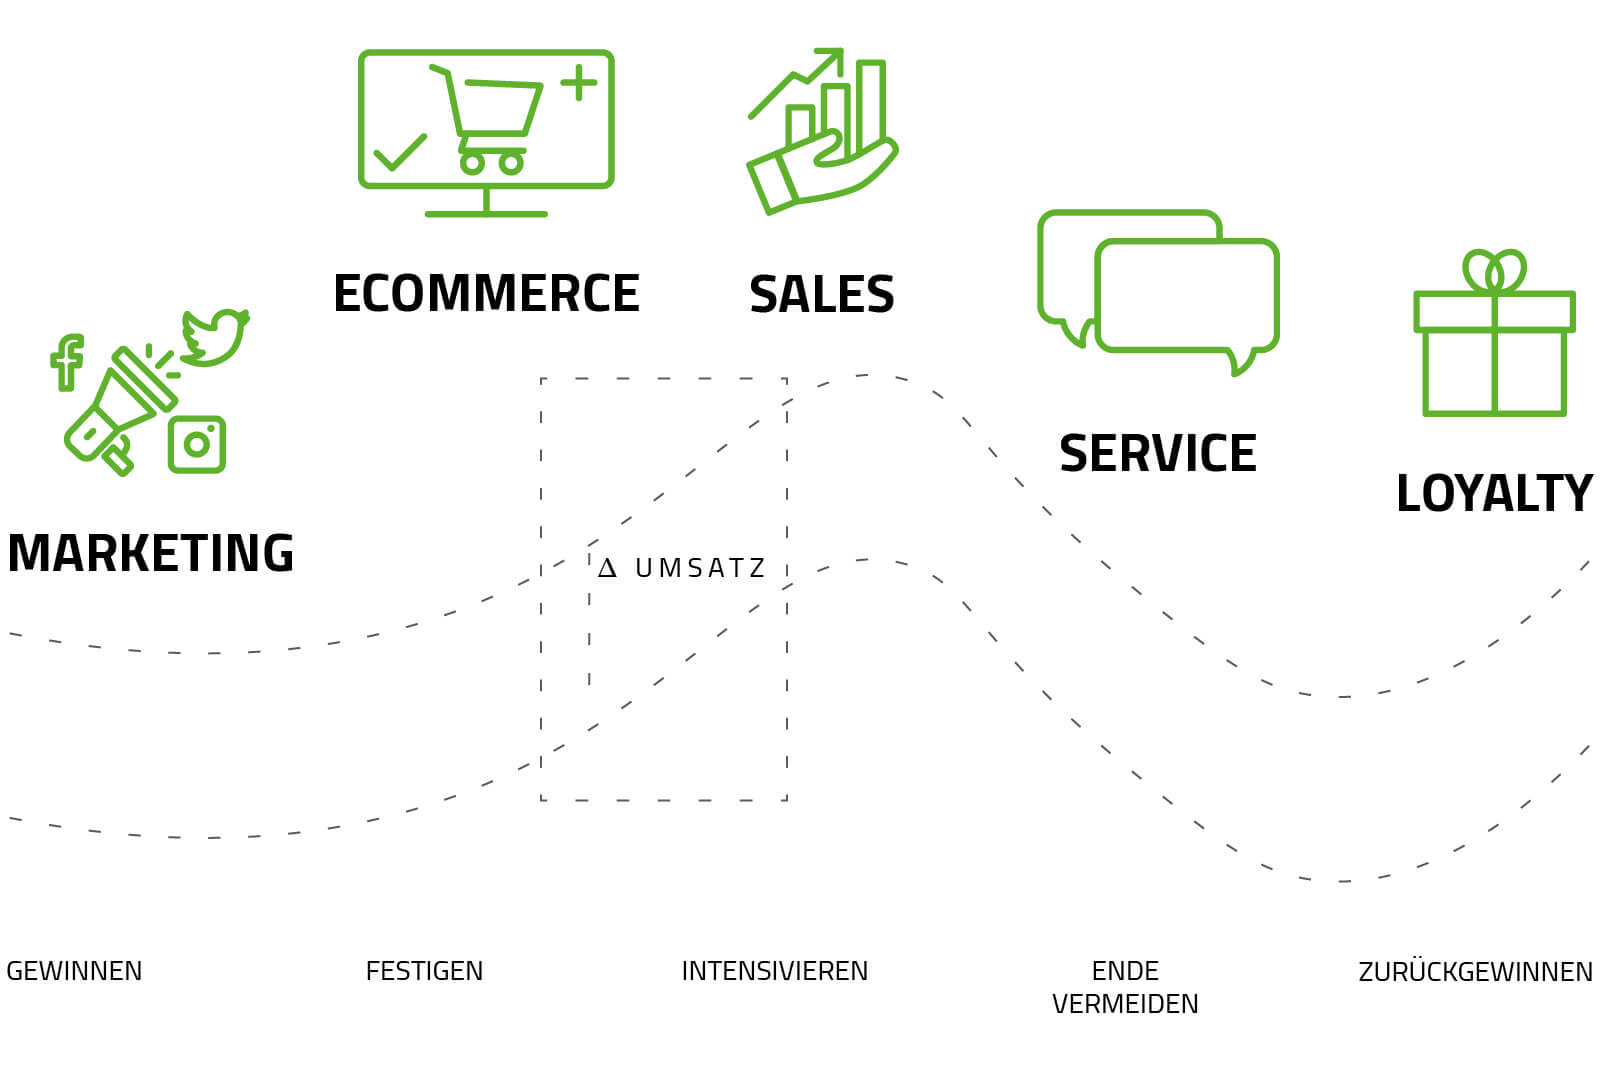 Lifecycle Customer Experience